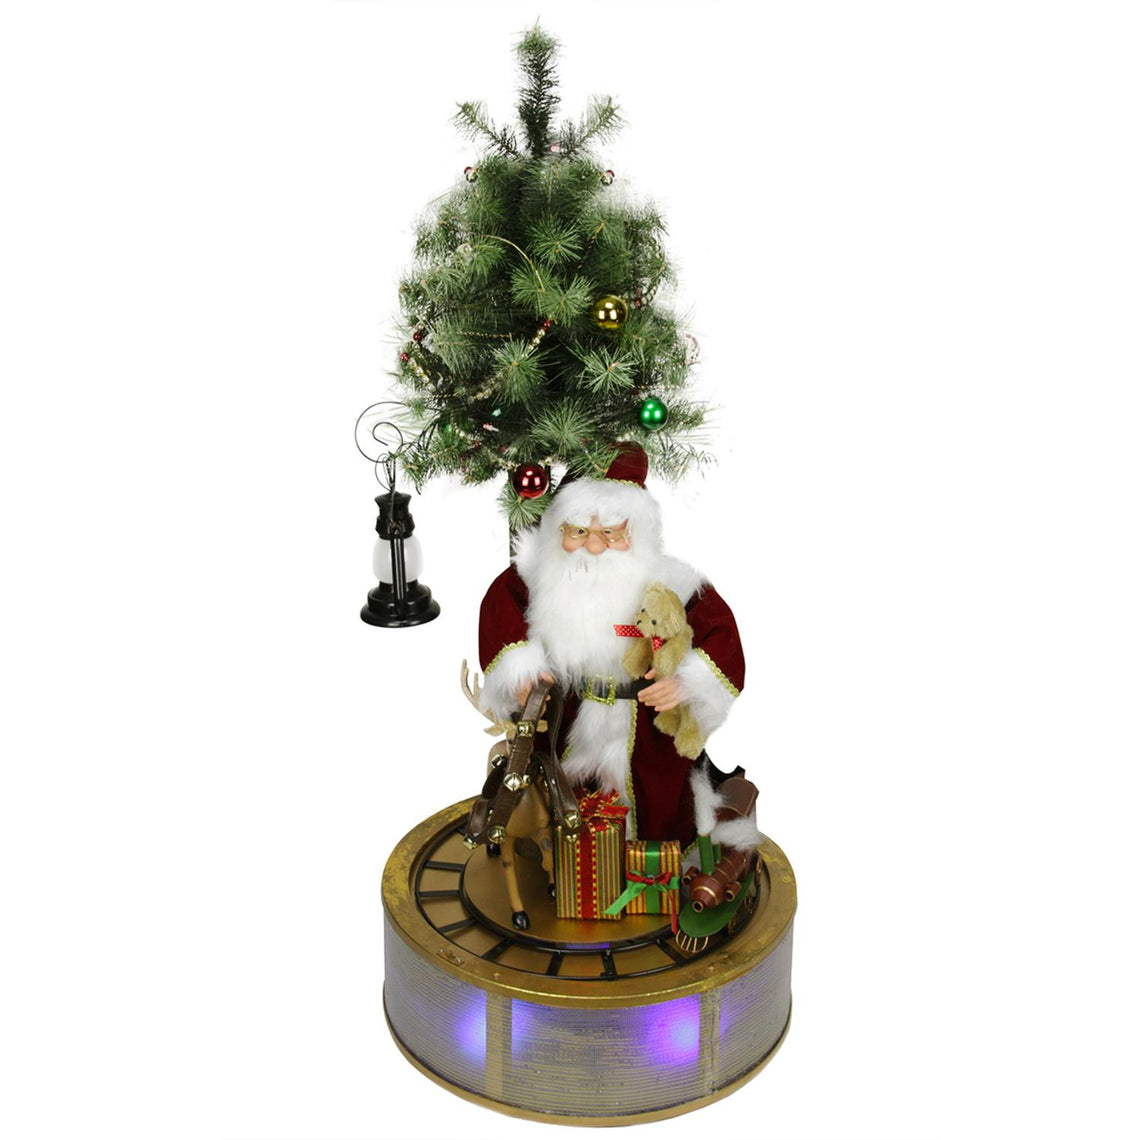 4' Animated and Musical Lighted LED Santa Claus with Tree and Rotating Train Christmas Decor